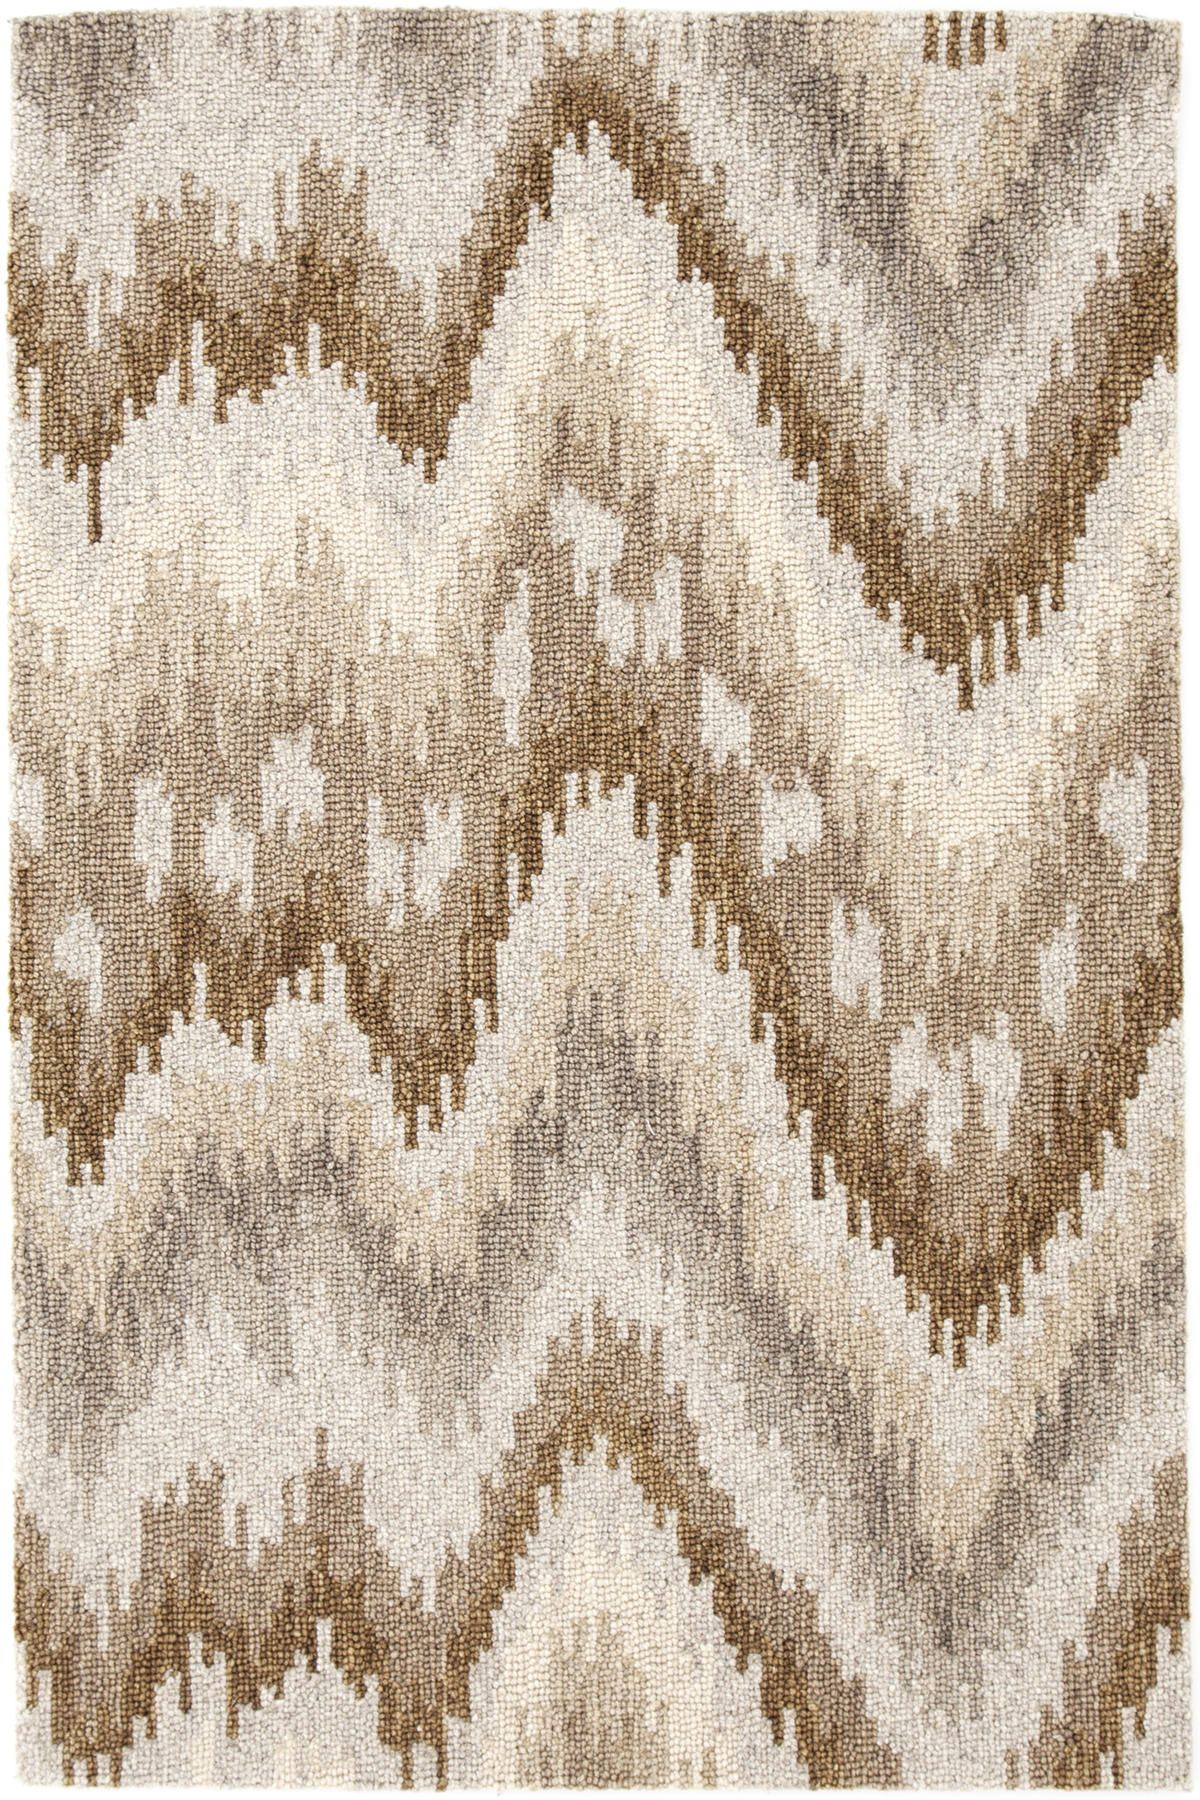 Graymond Micro Hooked Wool Rug The Outlet Dash And Albert Rugs